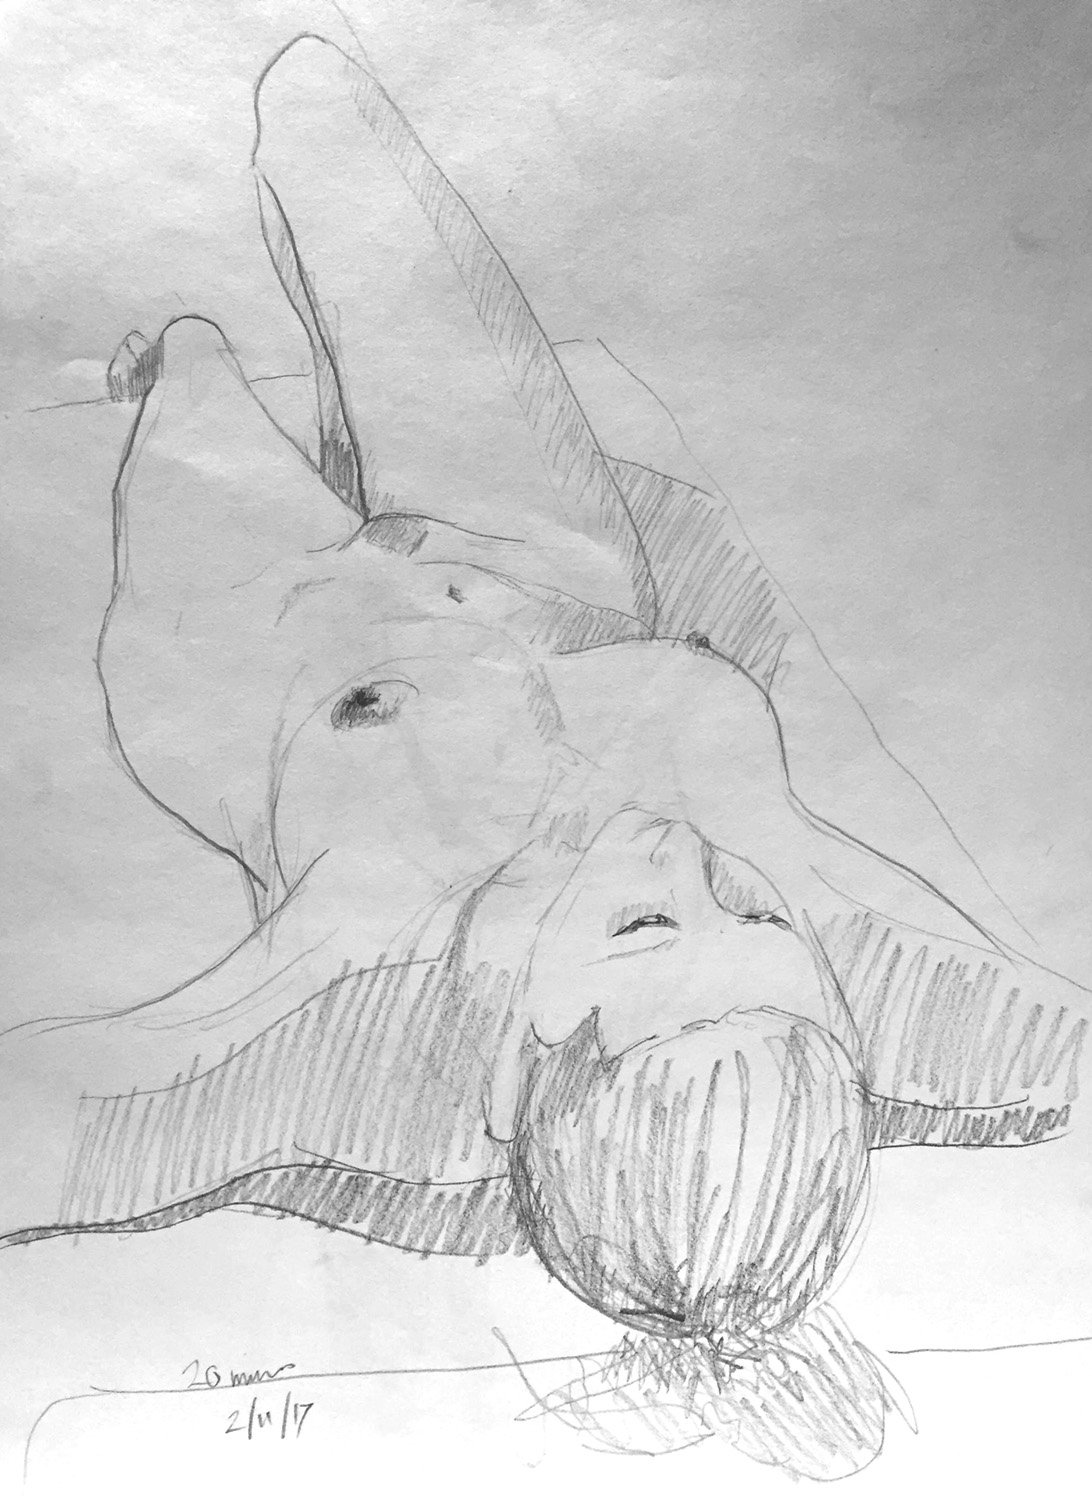 Life Drawing Sketch Session 2/11/17